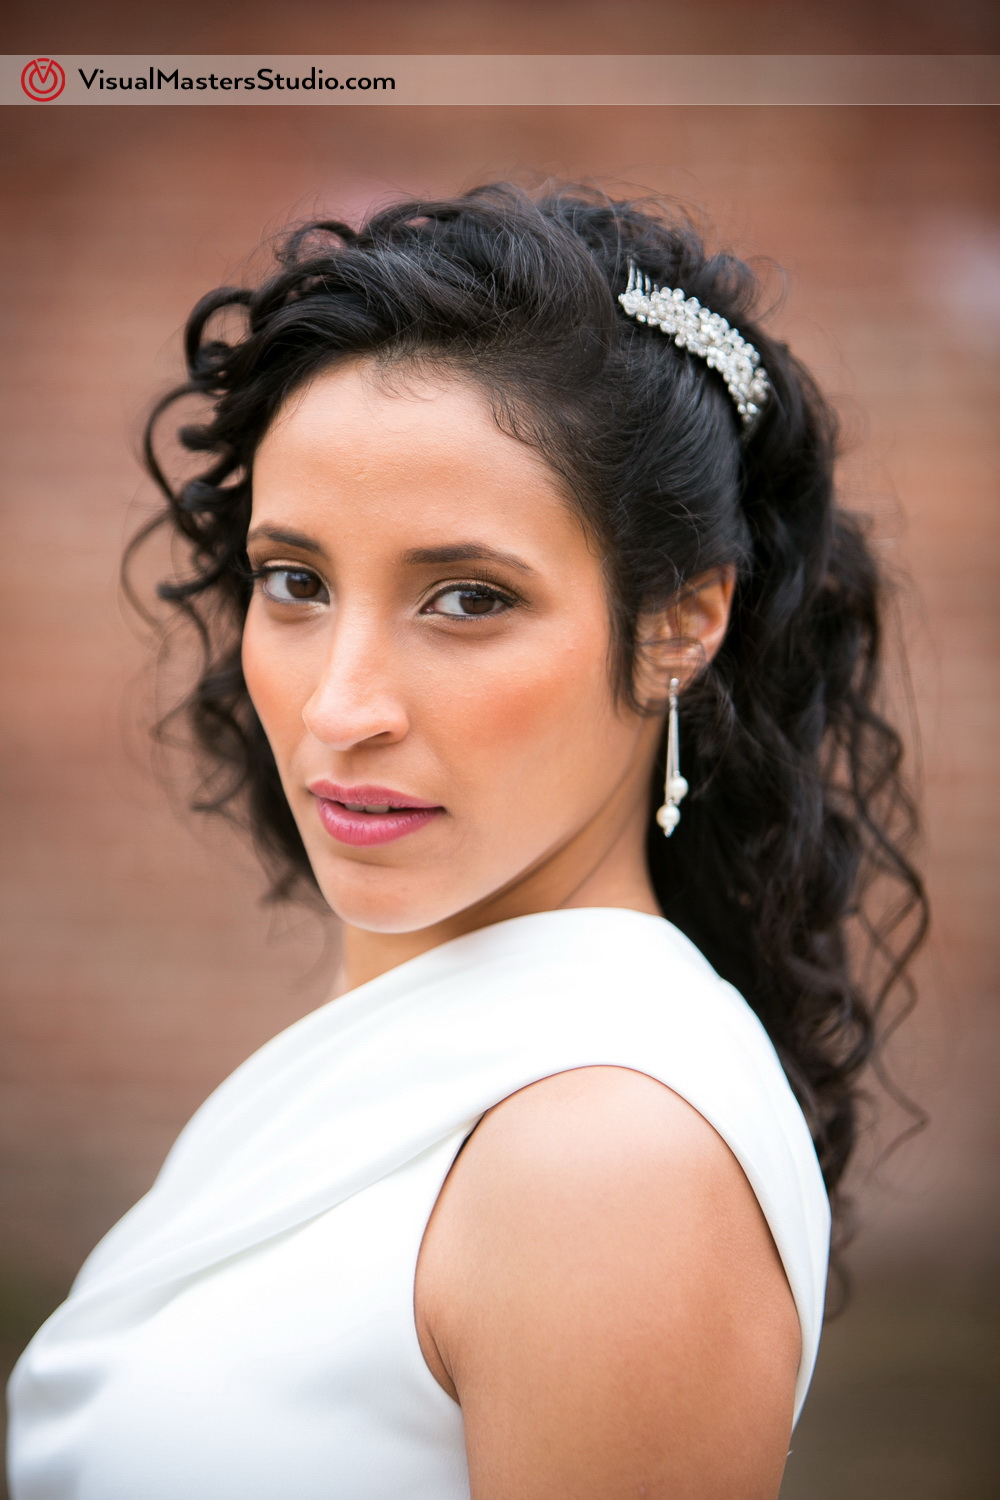 Beautiful Bride Portrait By Visual Masters